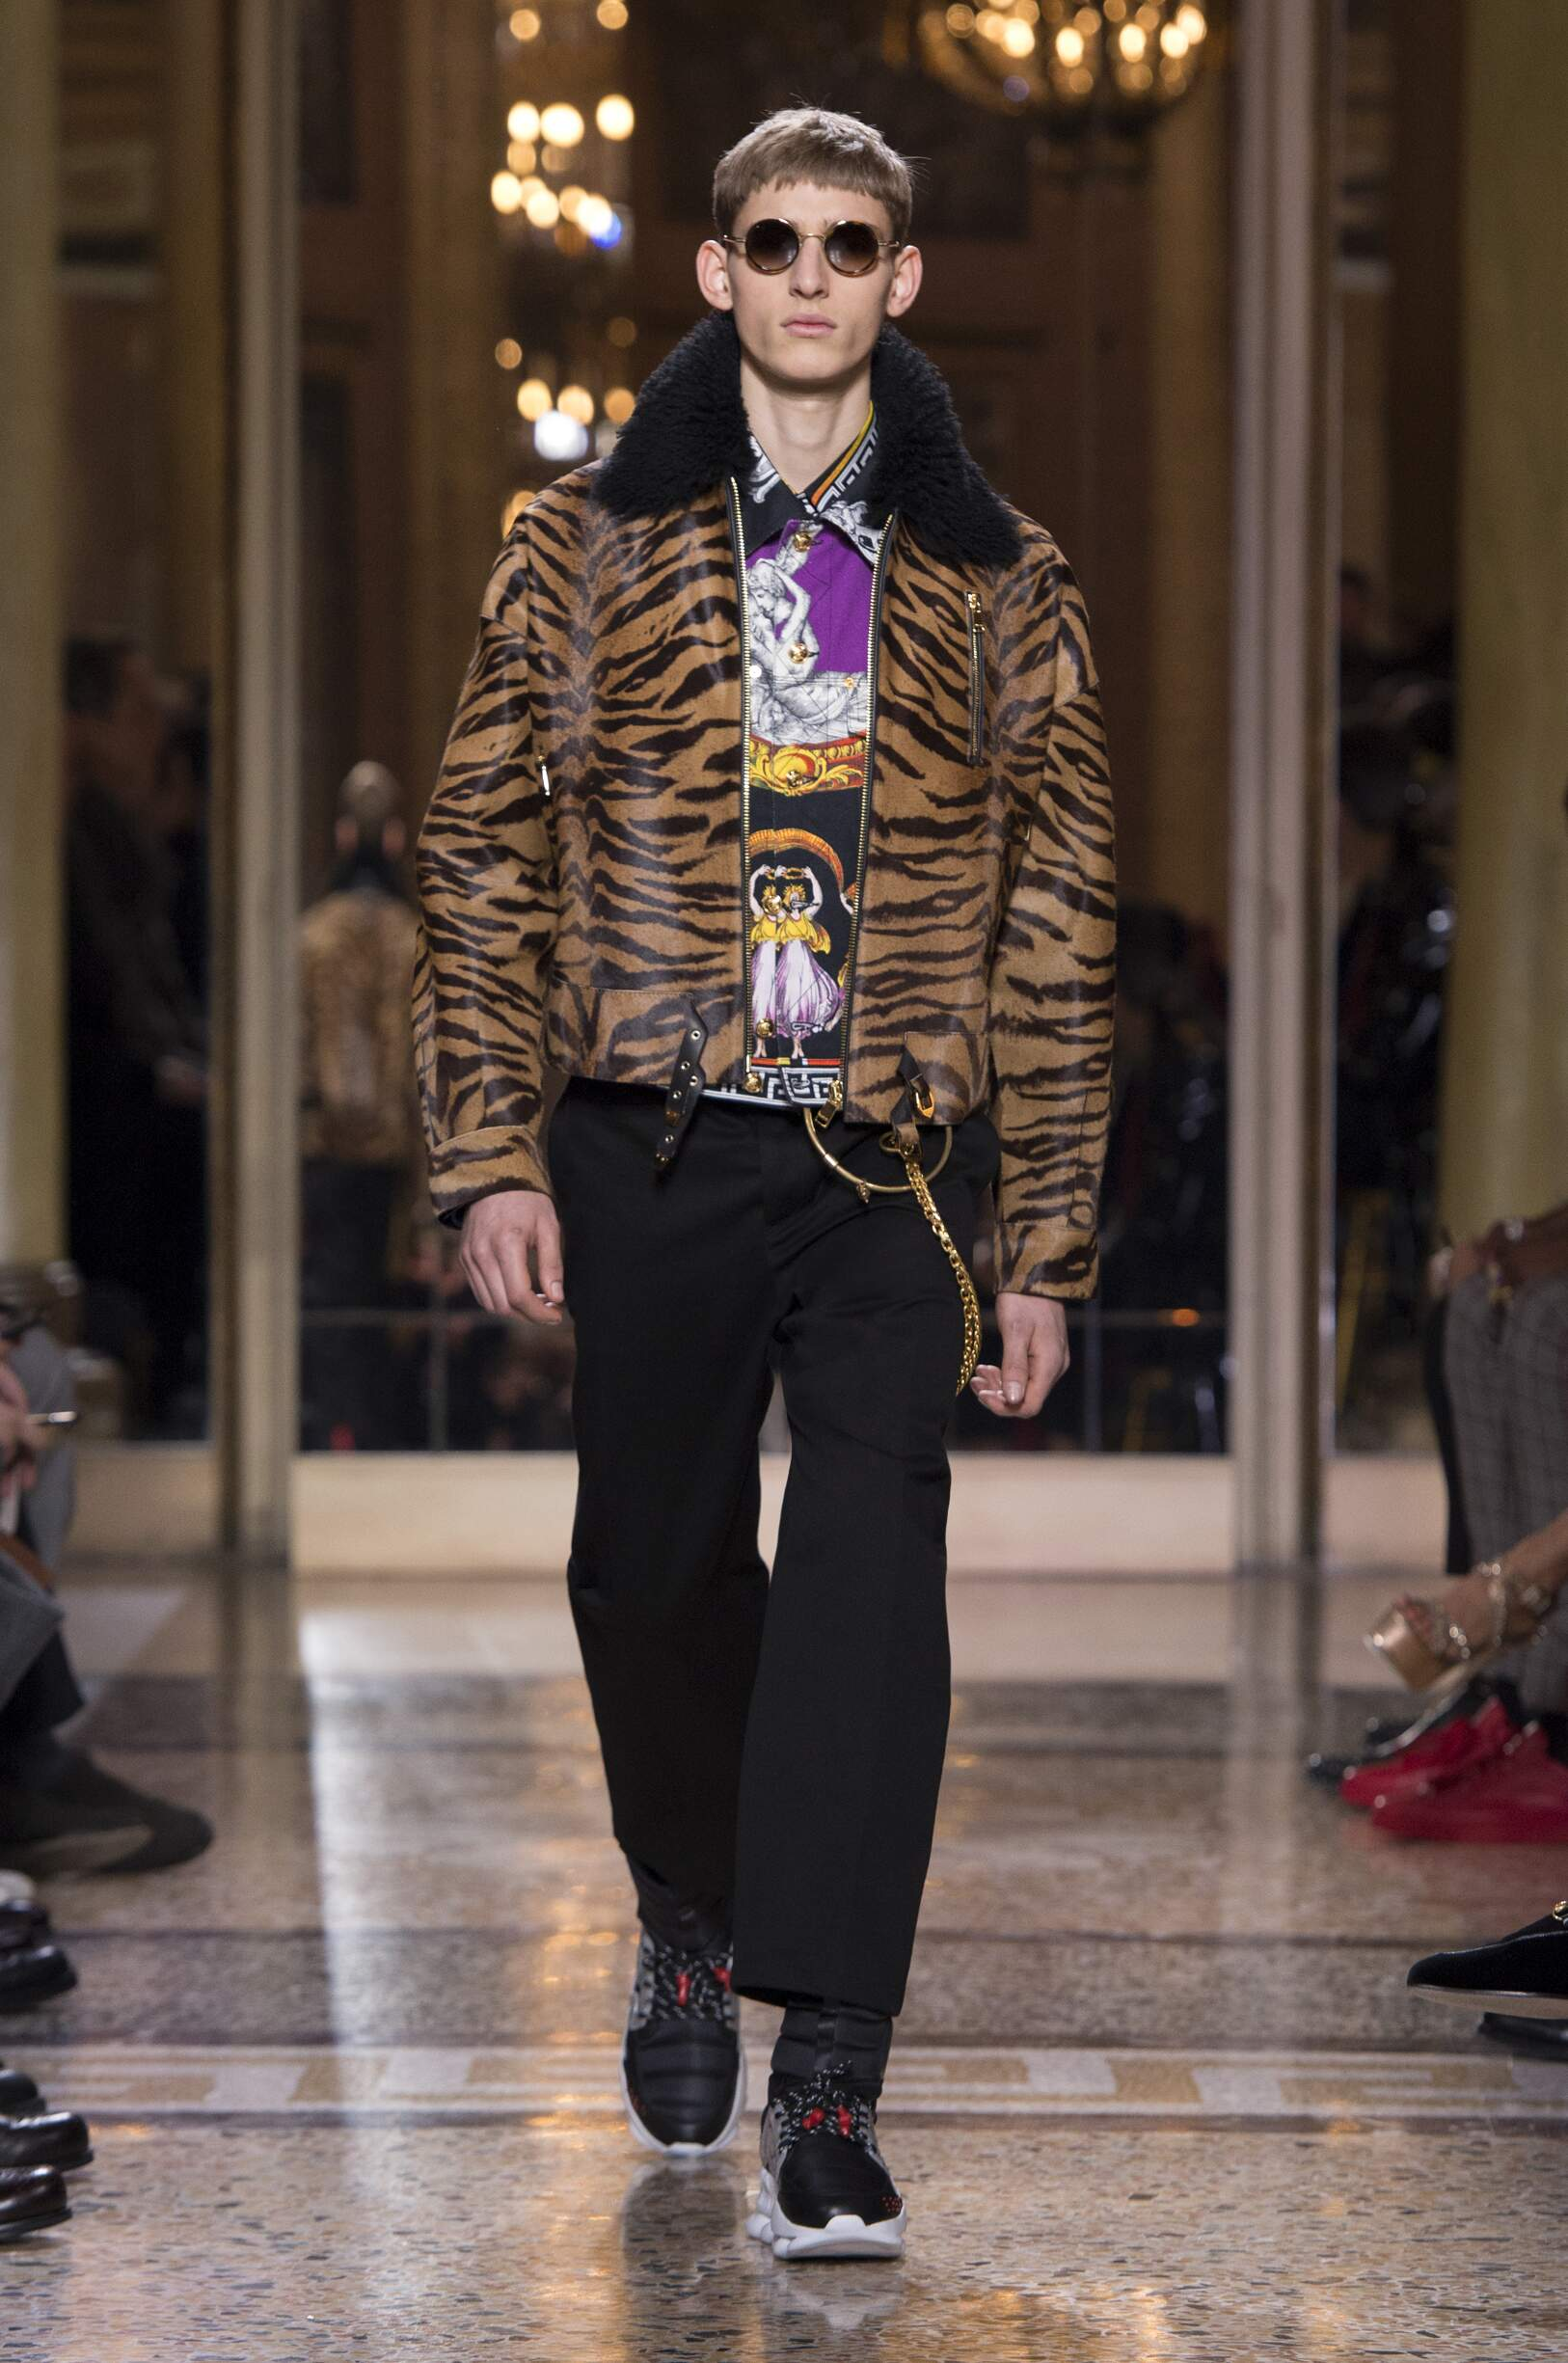 Catwalk Versace Man Fashion Show Winter 2018